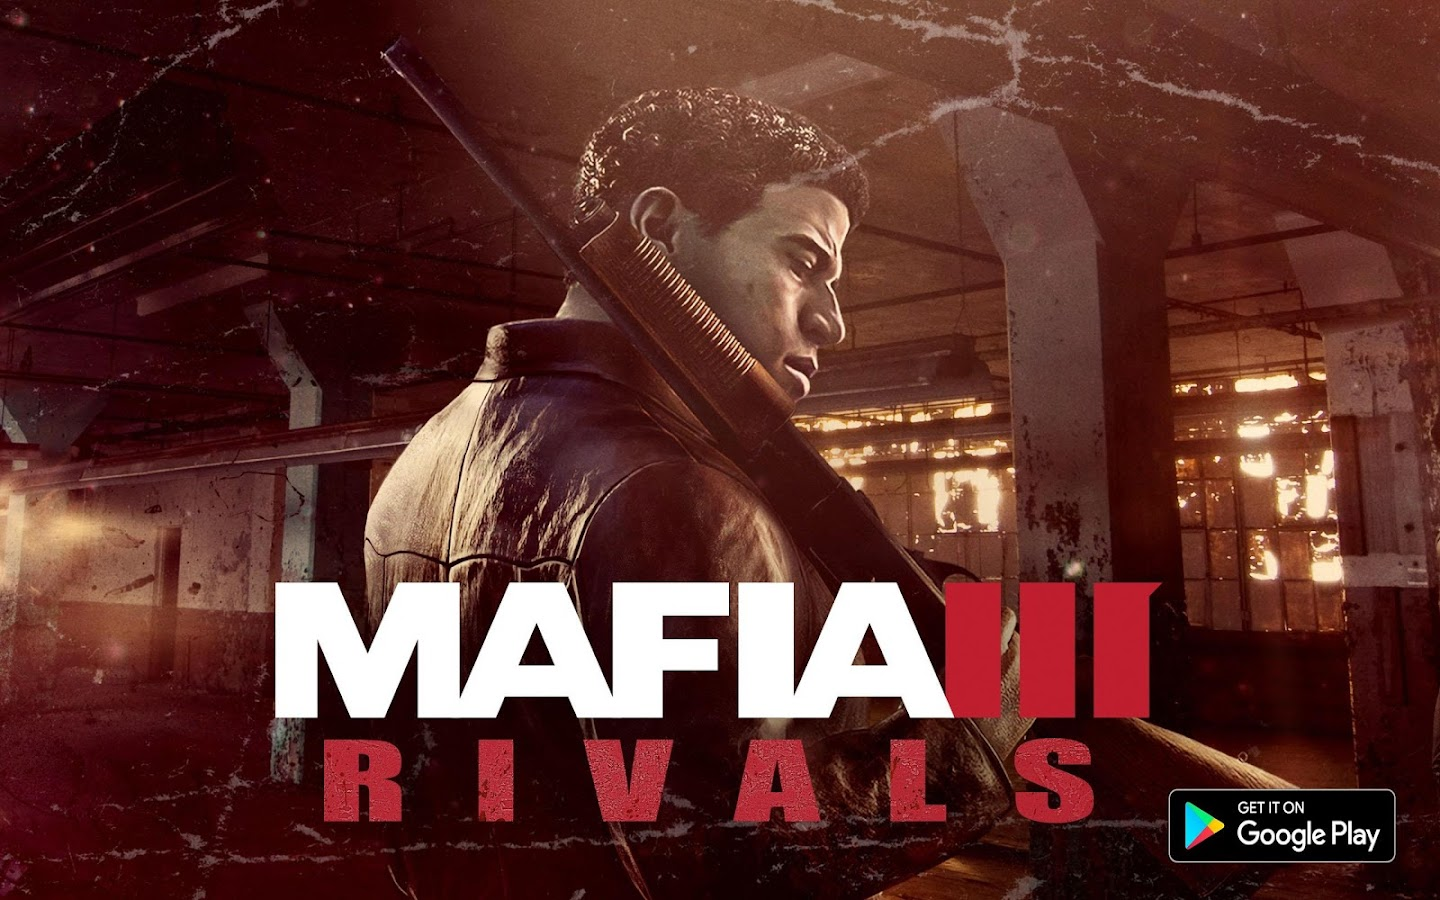 Mafia III: Rivals 1 0 0 226798 APK Download - Android Role